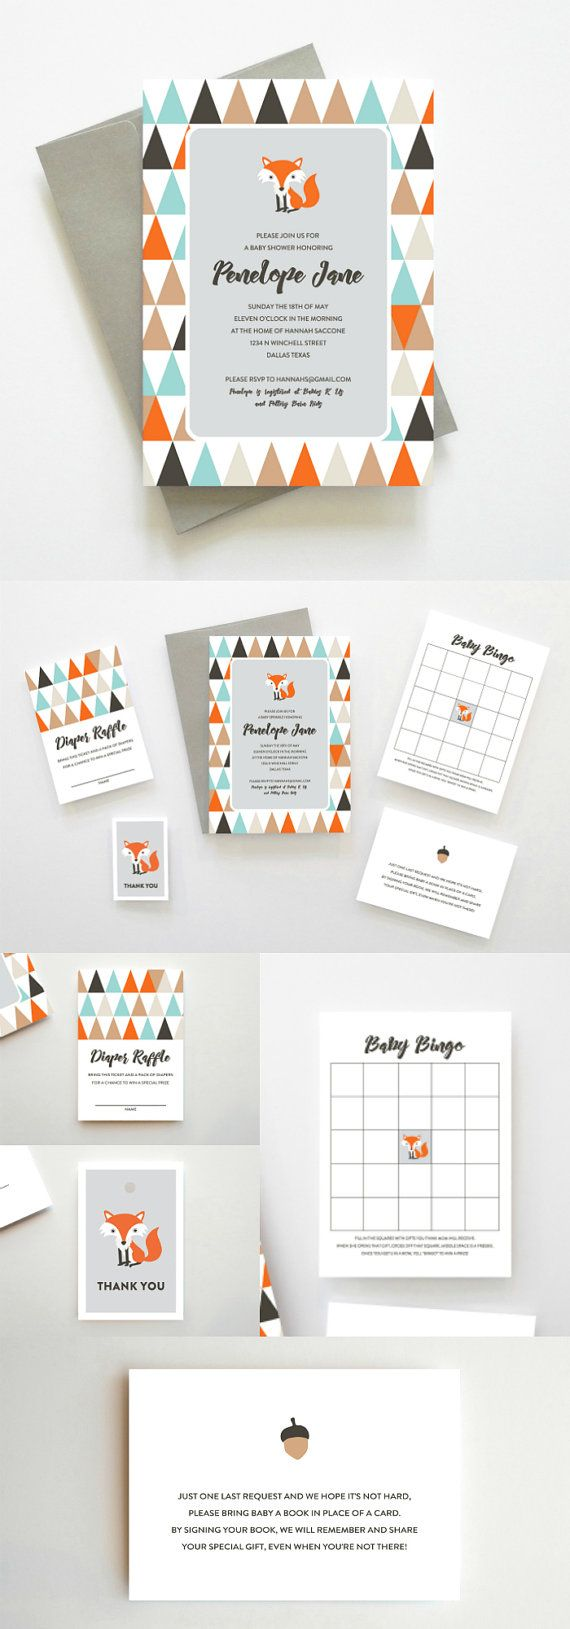 Easy Woodland Baby Shower Theme // Woodland Fox Printable Baby Shower Bundle by Oakhouse